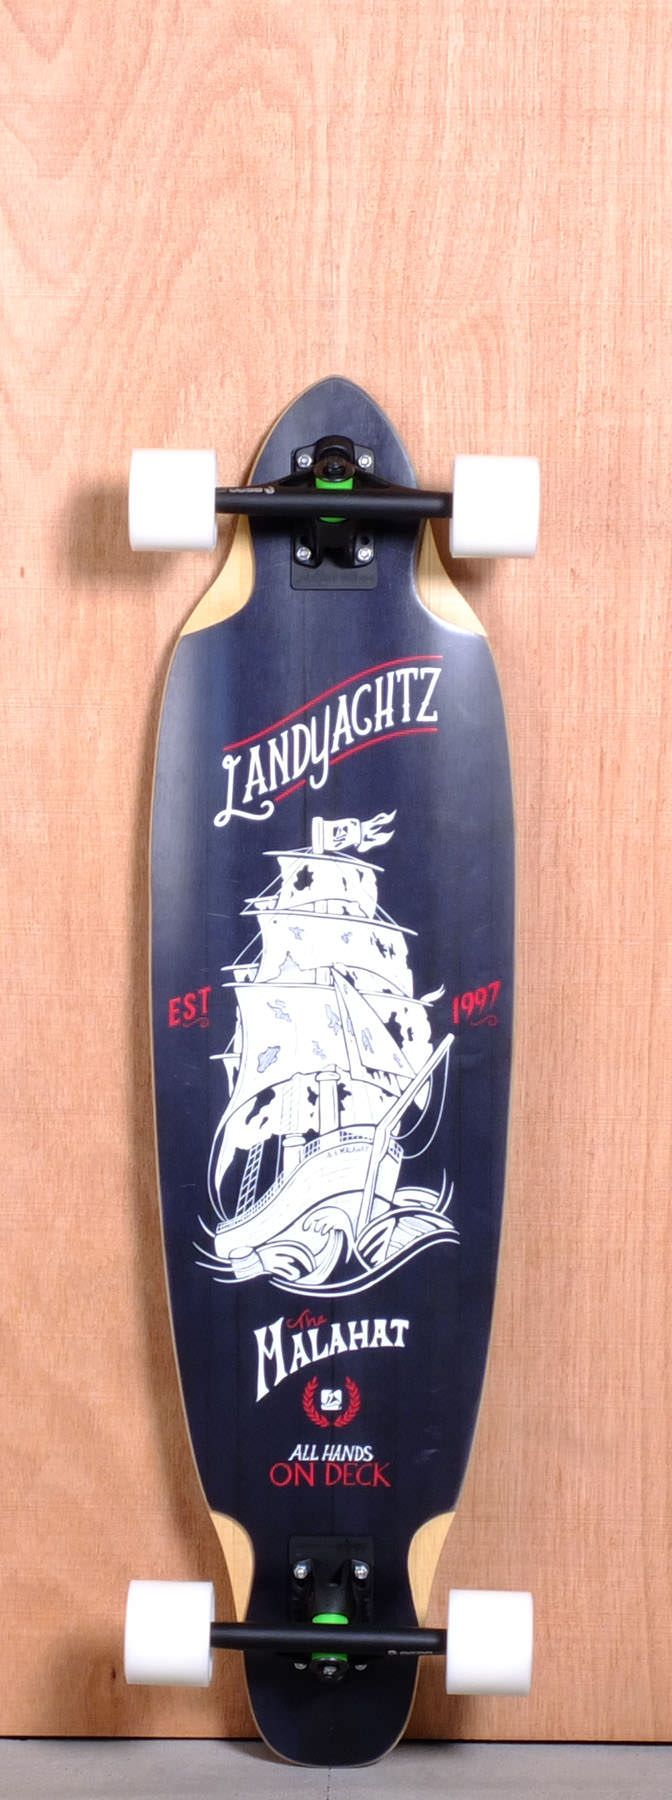 """The Landyachtz Malahat Longboard Deck is designed for Carving, Cruising and Freeride. Ships fully assembled and ready to skate! Function: Carving, Cruising, Freeride Features: Medium W Concave, Rocker, Wheel Wells Material: 5 Ply Vertically Laminated Bamboo, Fiberlass Core Length: 38"""" Width: 10"""" Wheelbase: 27.5"""" Thickness: 9/16"""" Hole Pattern: Old School Grip: Black"""